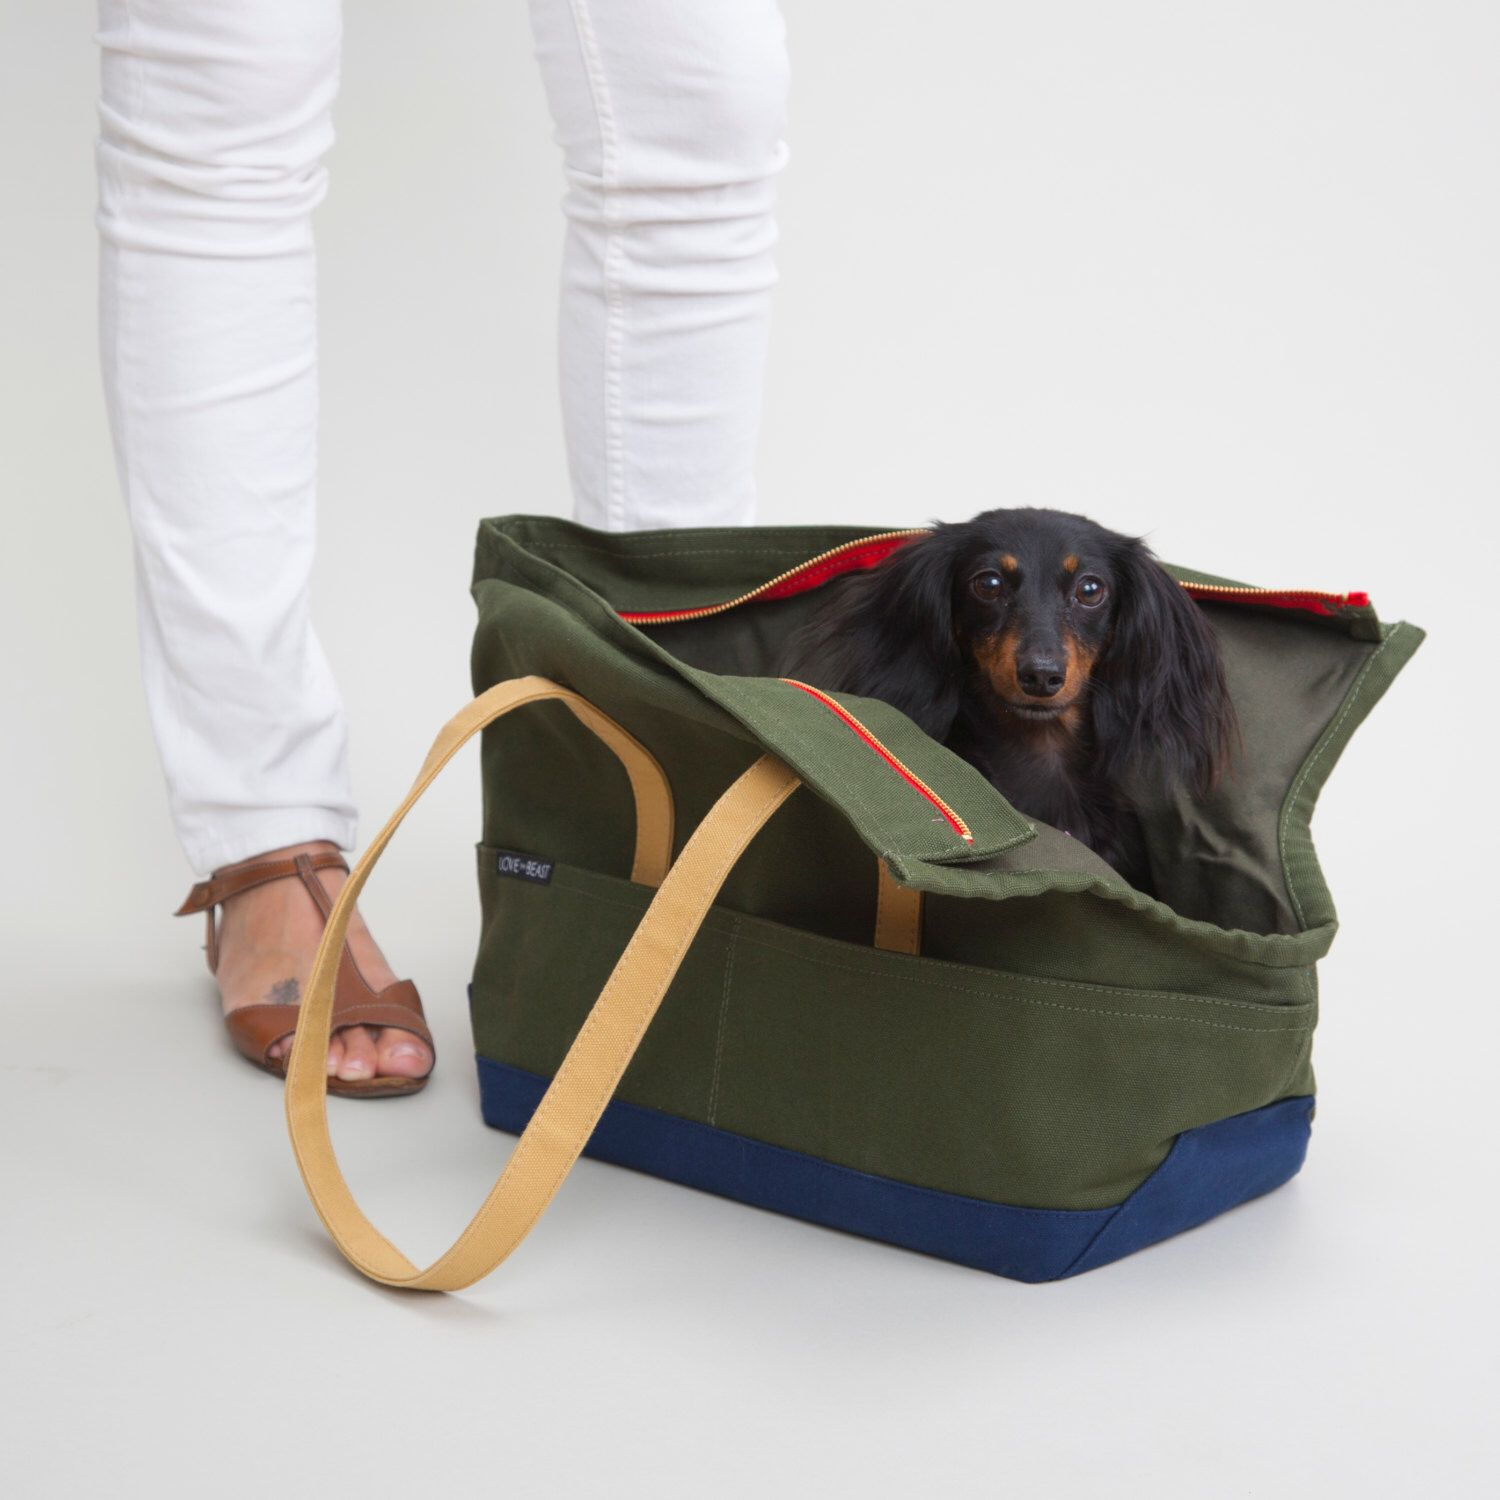 Canvas Pet Tote Olive Navy Dog Carrier By Lovethybeast On Etsy Https Www Etsy Com Listing 187110956 Canvas Pet Tote Dog Carrier Bag Dog Carrier Dog Tote